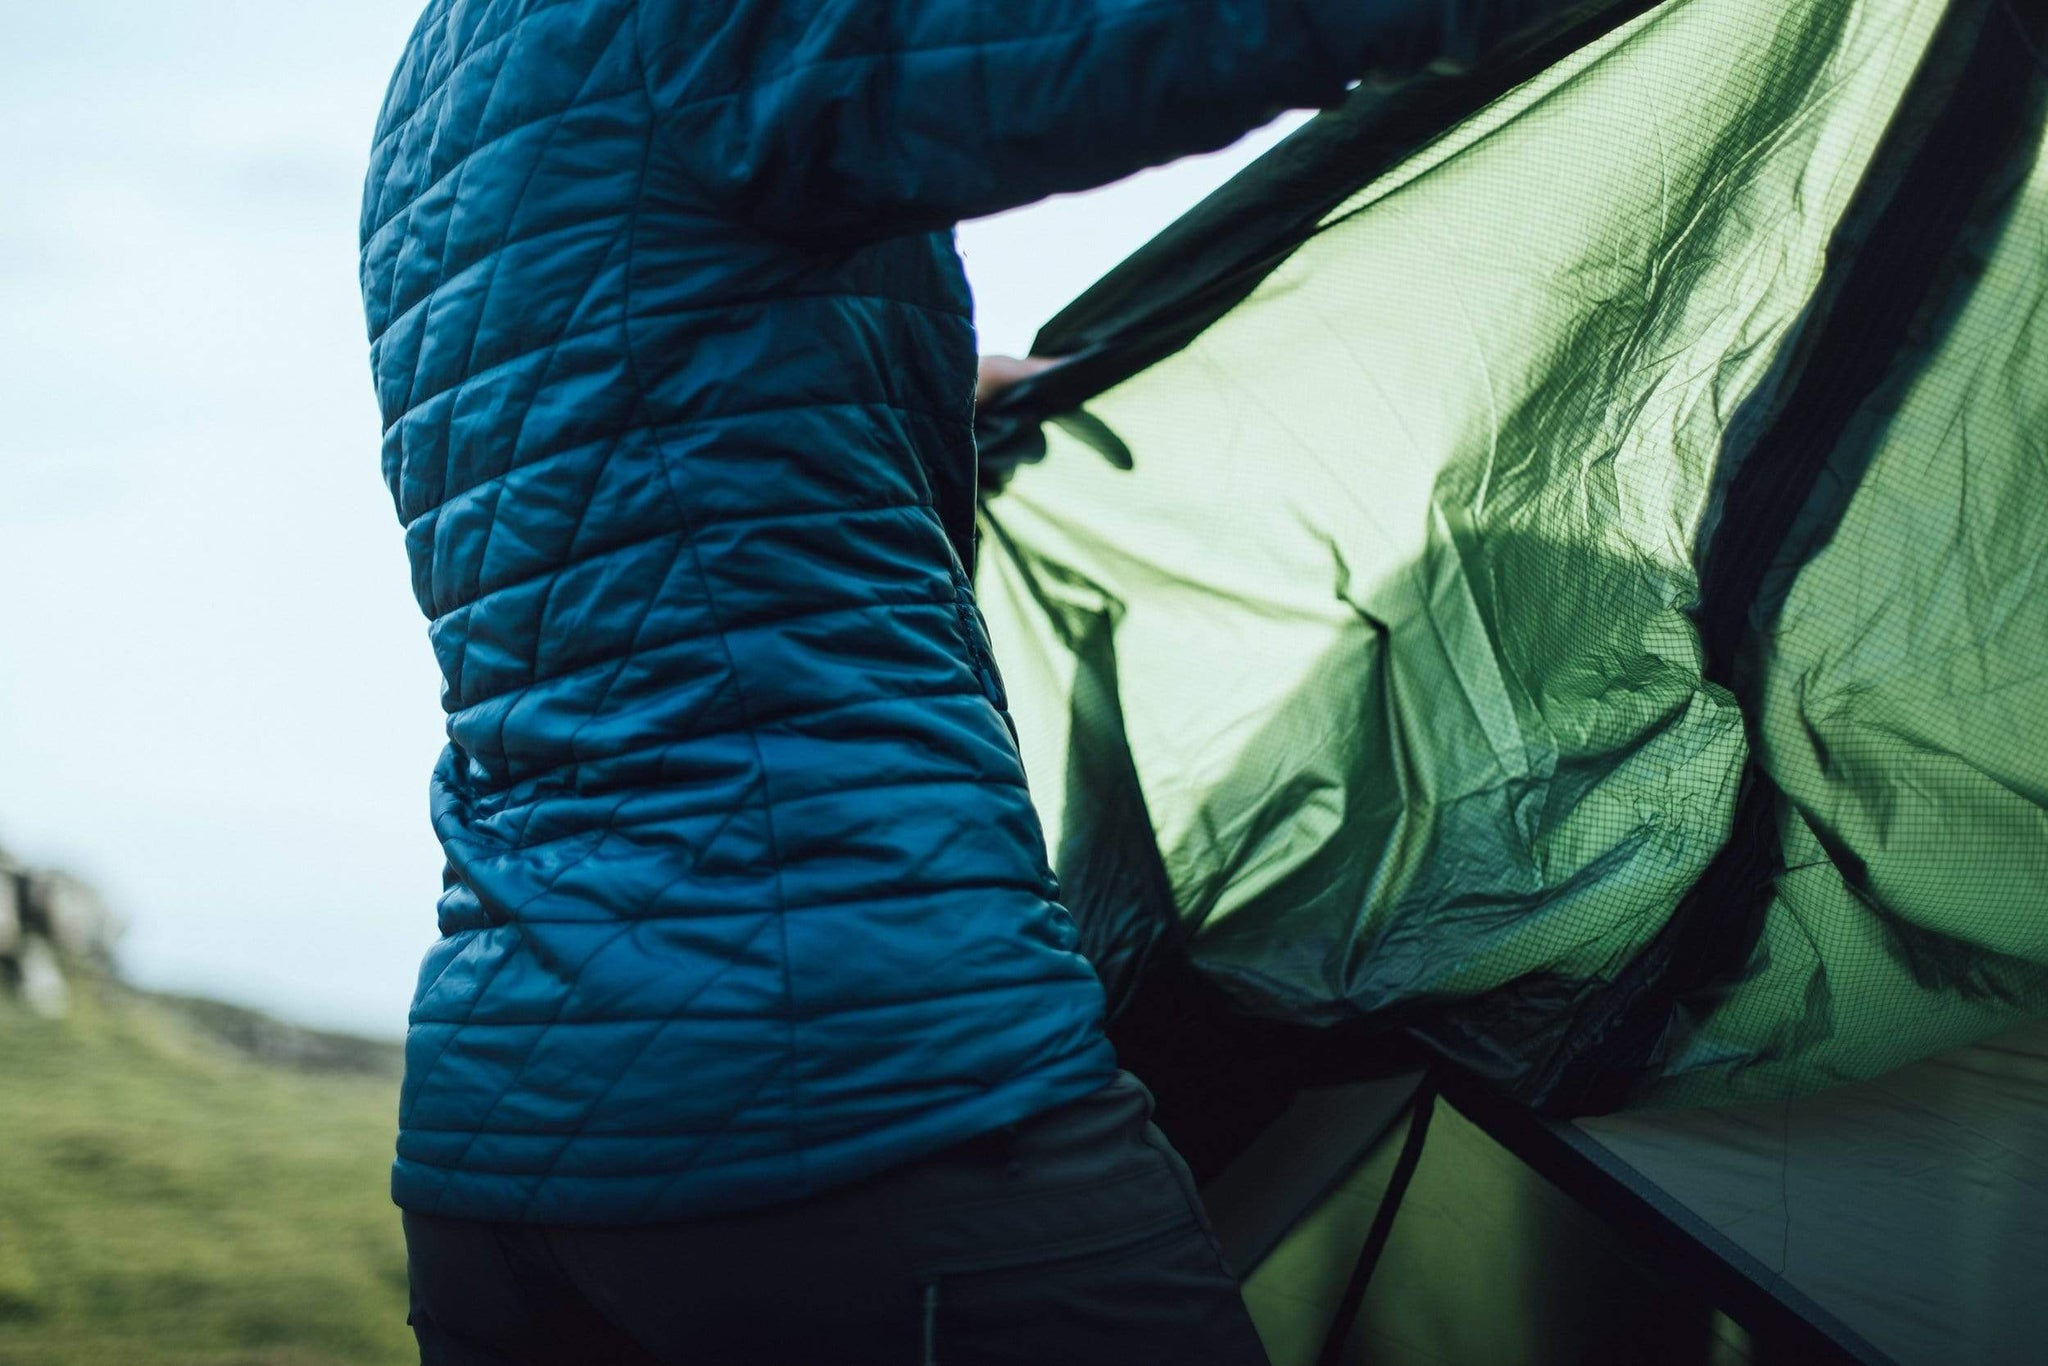 Pitching a tent and putting the fly sheet on top